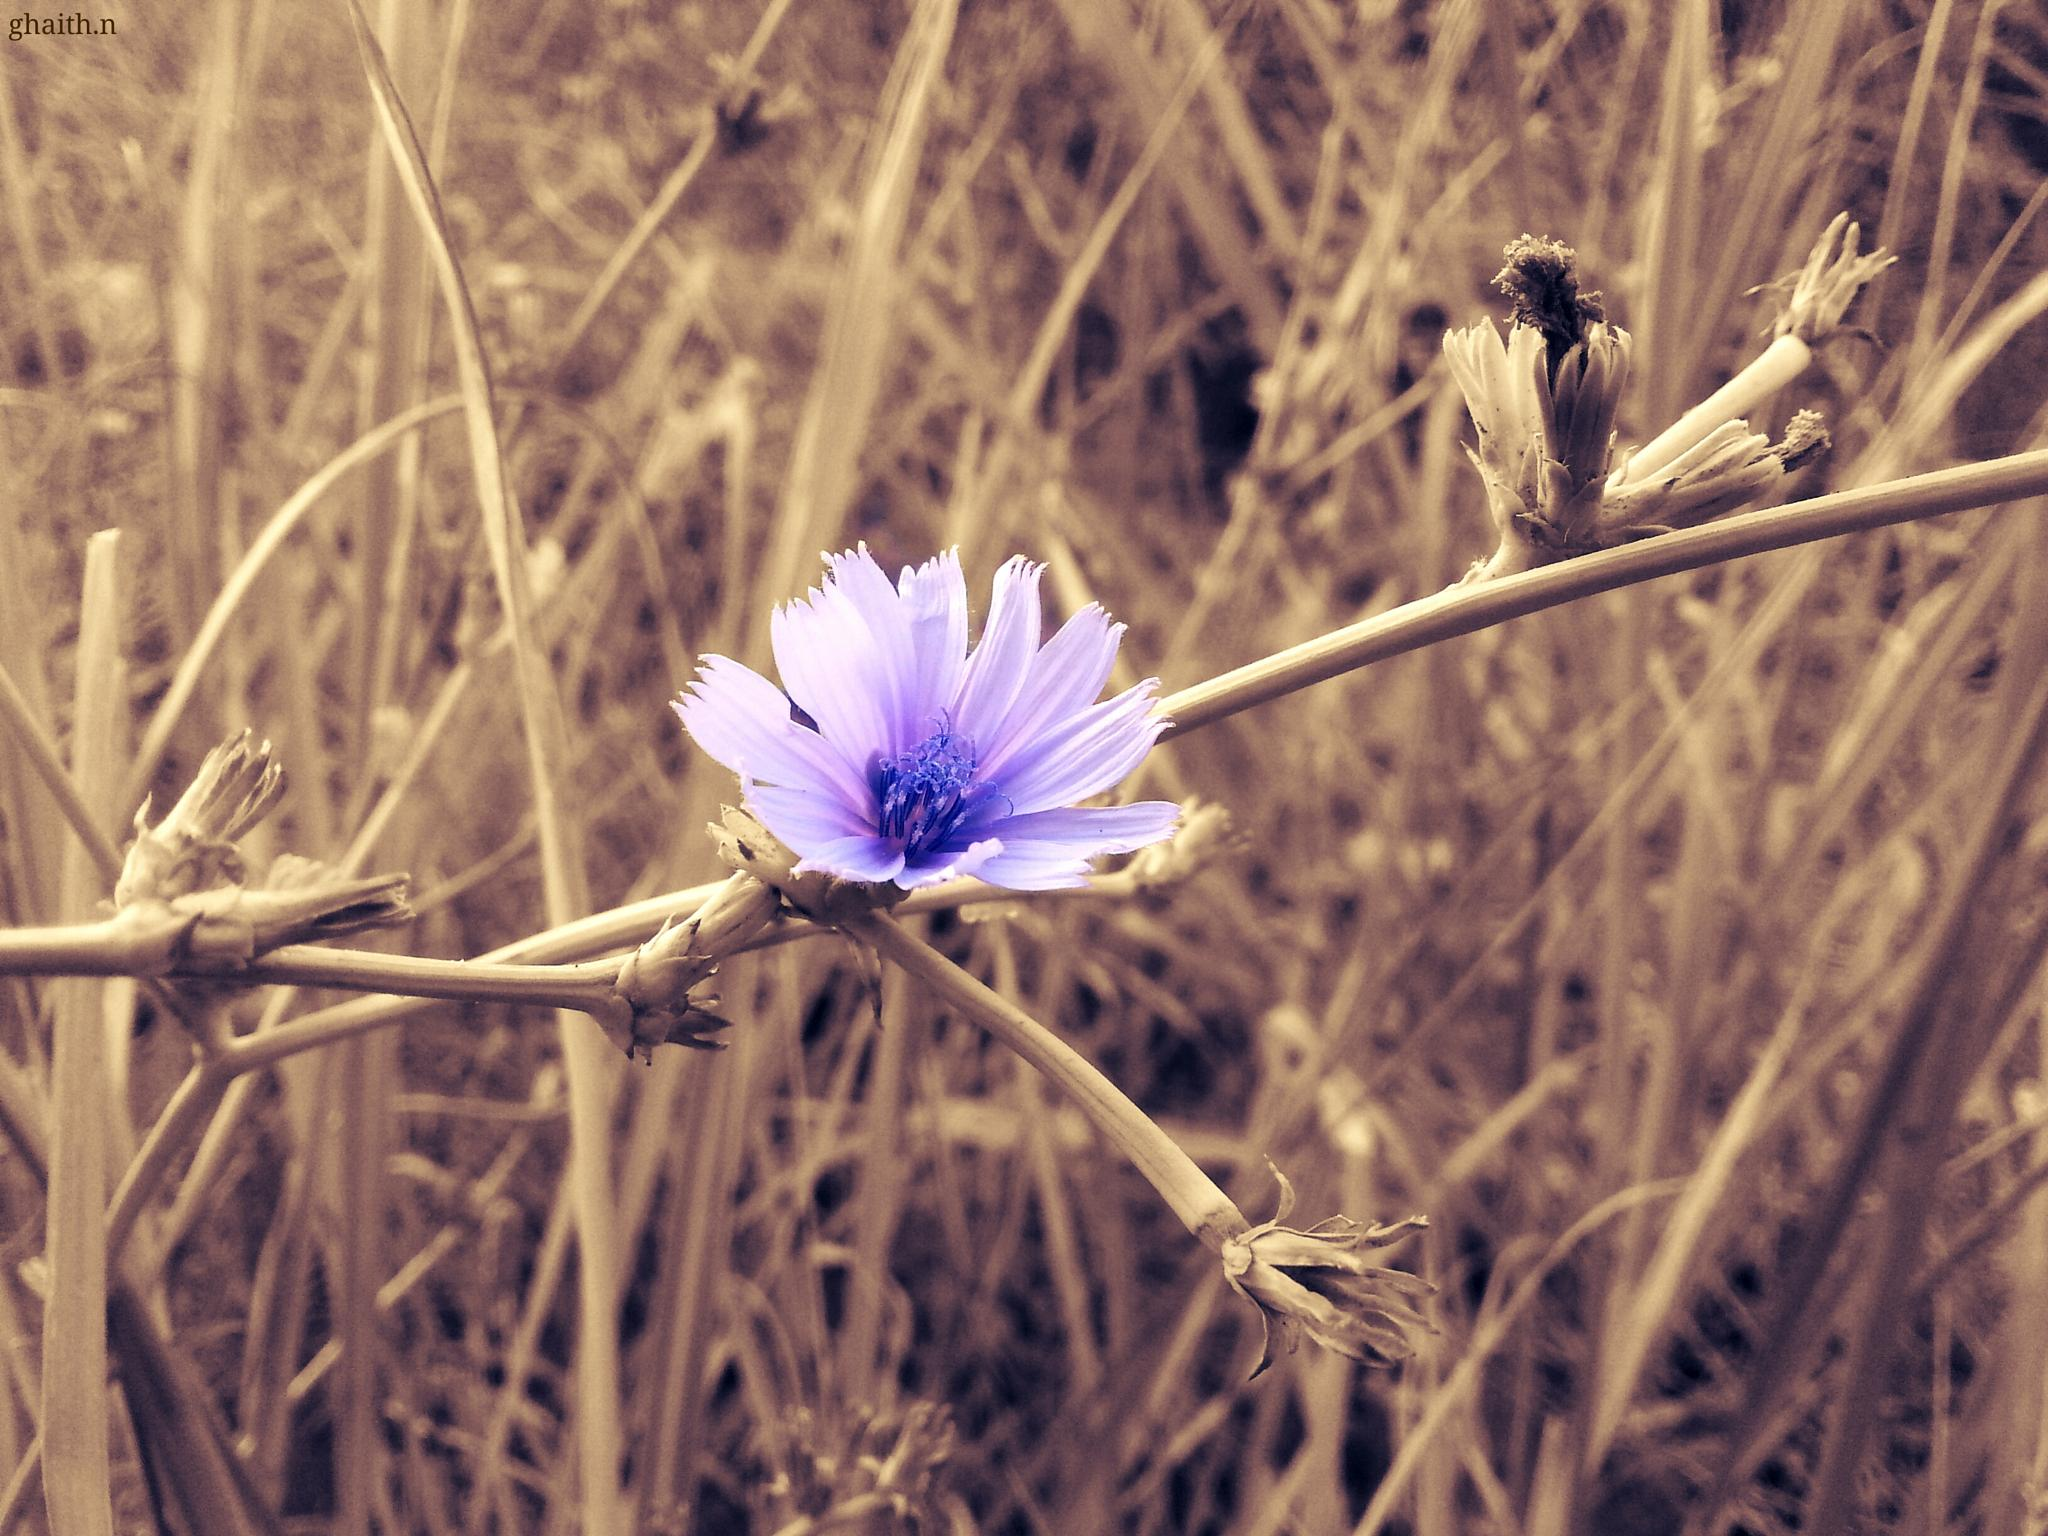 a small flower by ghaith